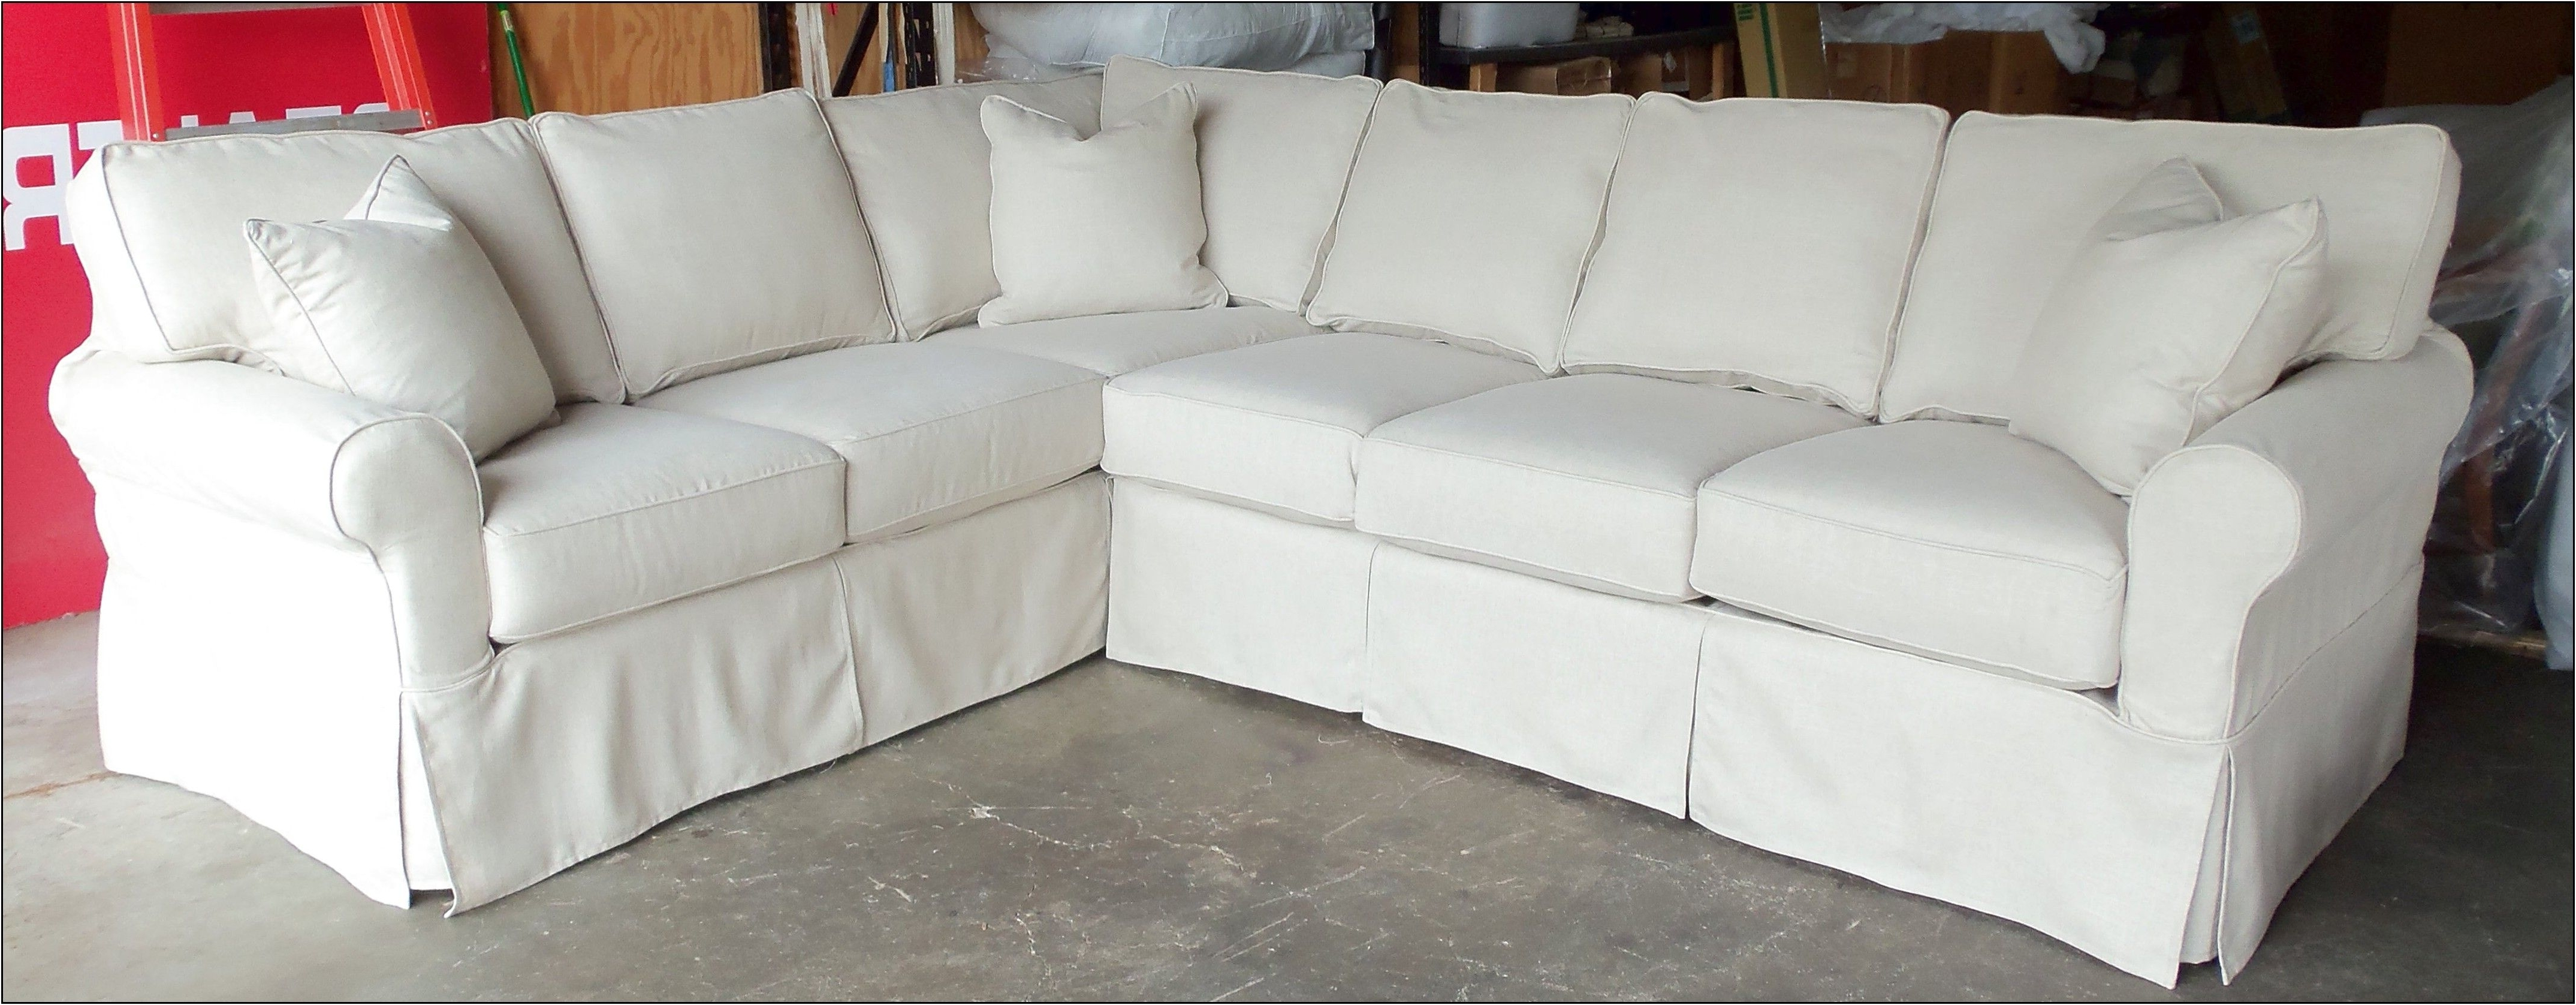 Cool Sectional Couch Cover , Best Sectional Couch Cover 72 For With Most Recent Slipcover Sectional Sofas With Chaise (View 3 of 15)